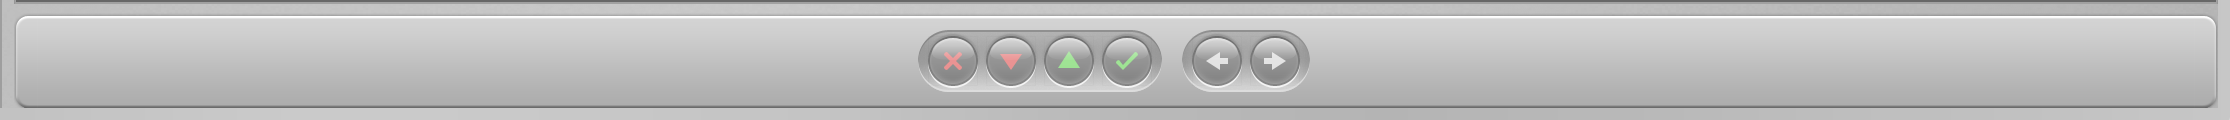 Control Bar with Navigation & Ratings buttons